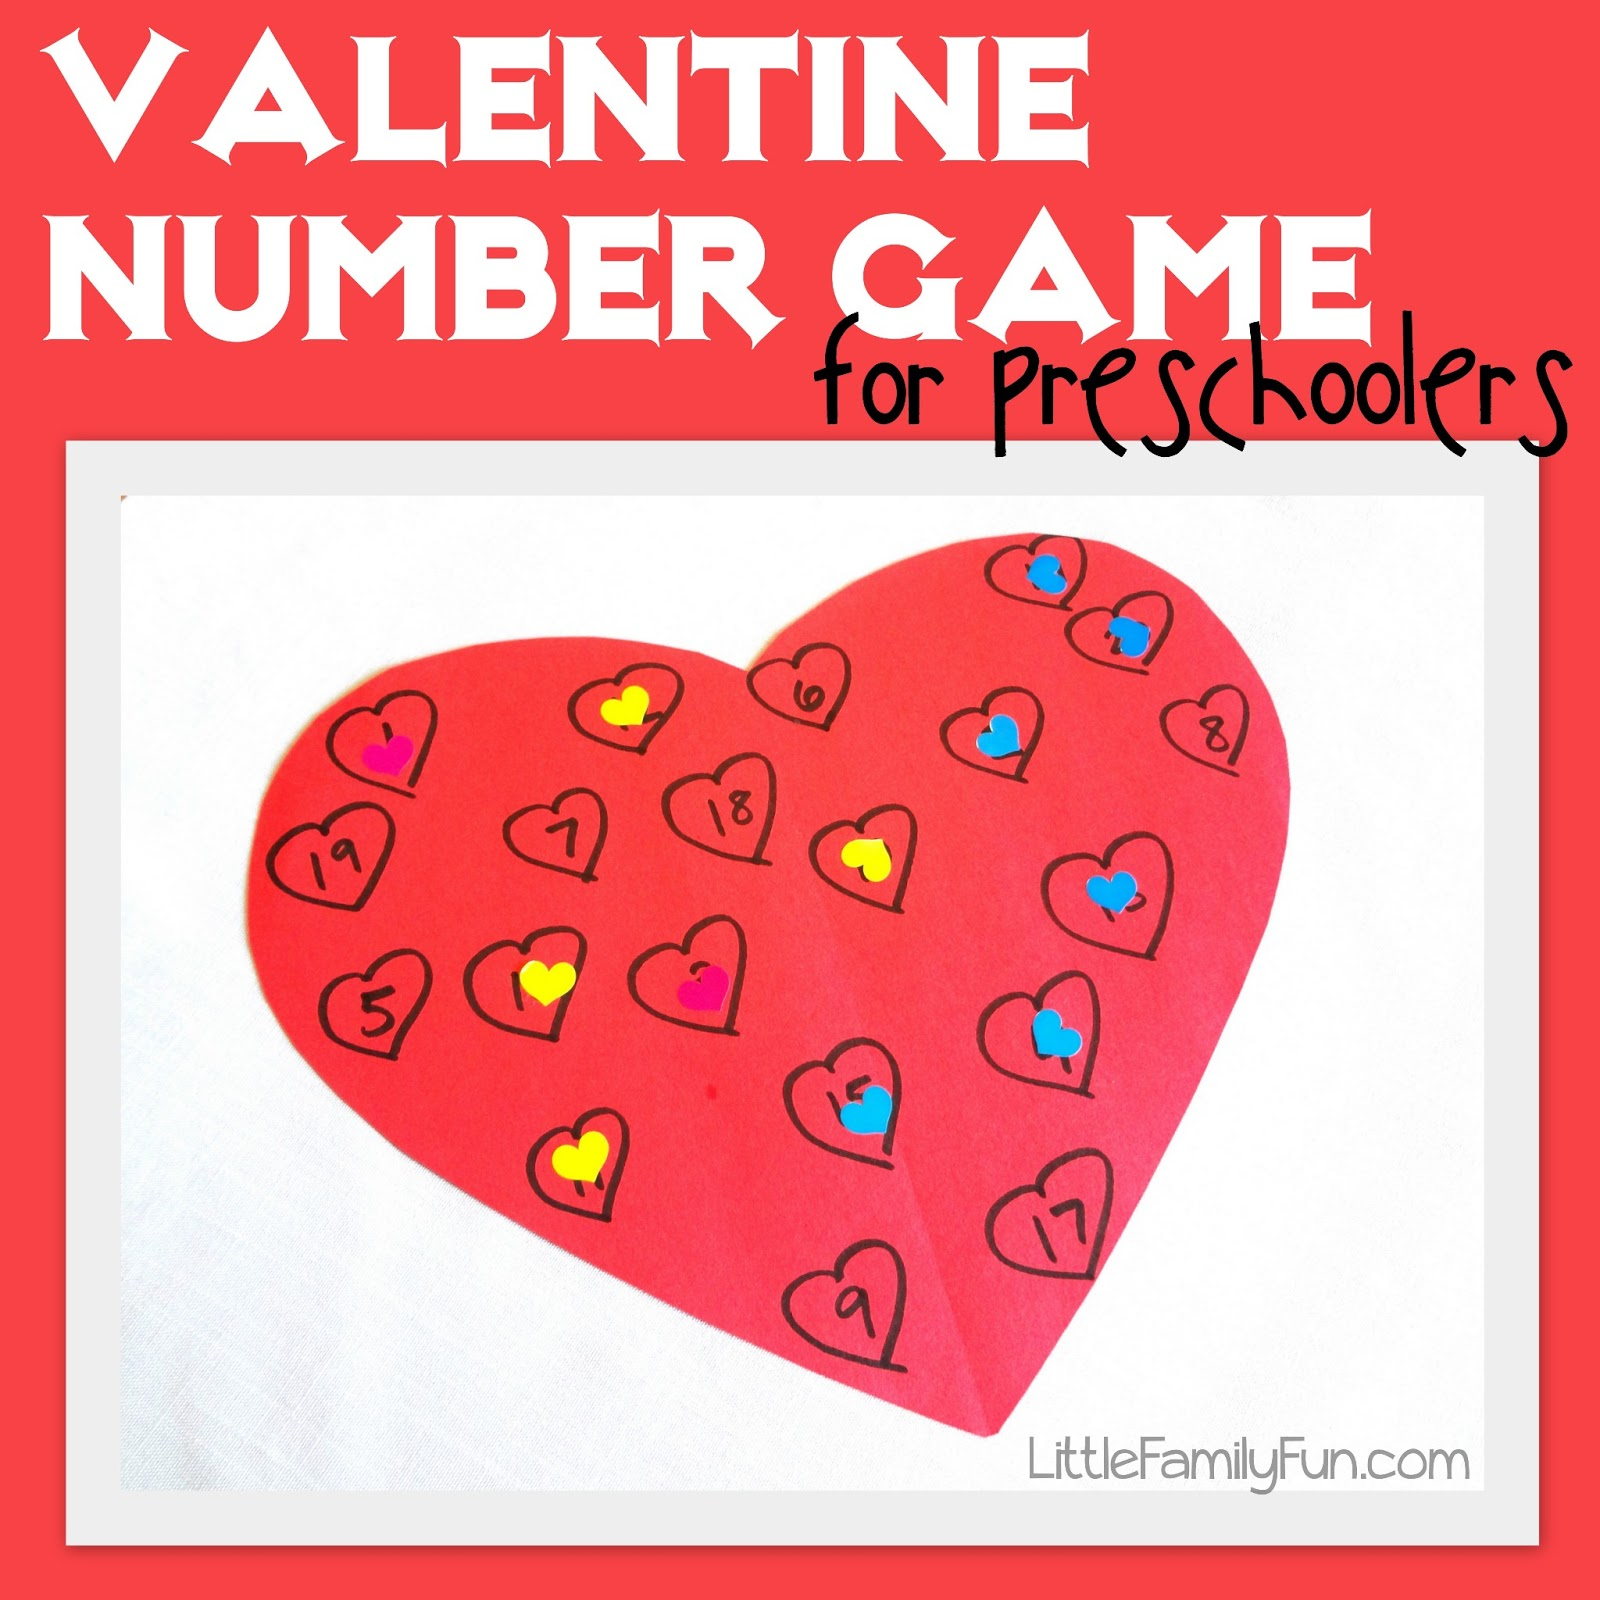 Little Family Fun Valentine Number Game For Preschoolers